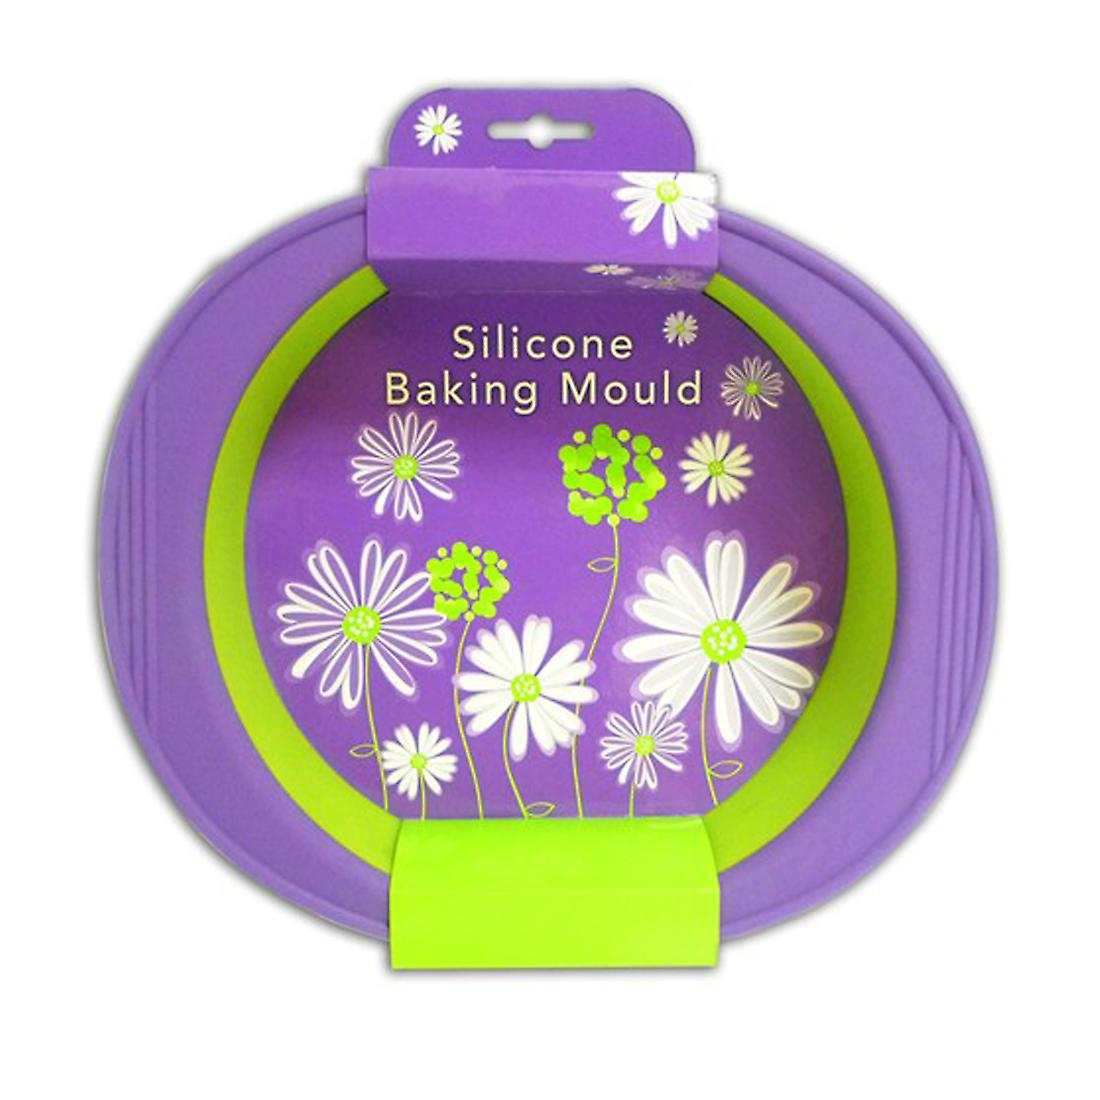 Round Pie & Baking Mould 27cm Diameter in High Grade Silicone by Royle Home